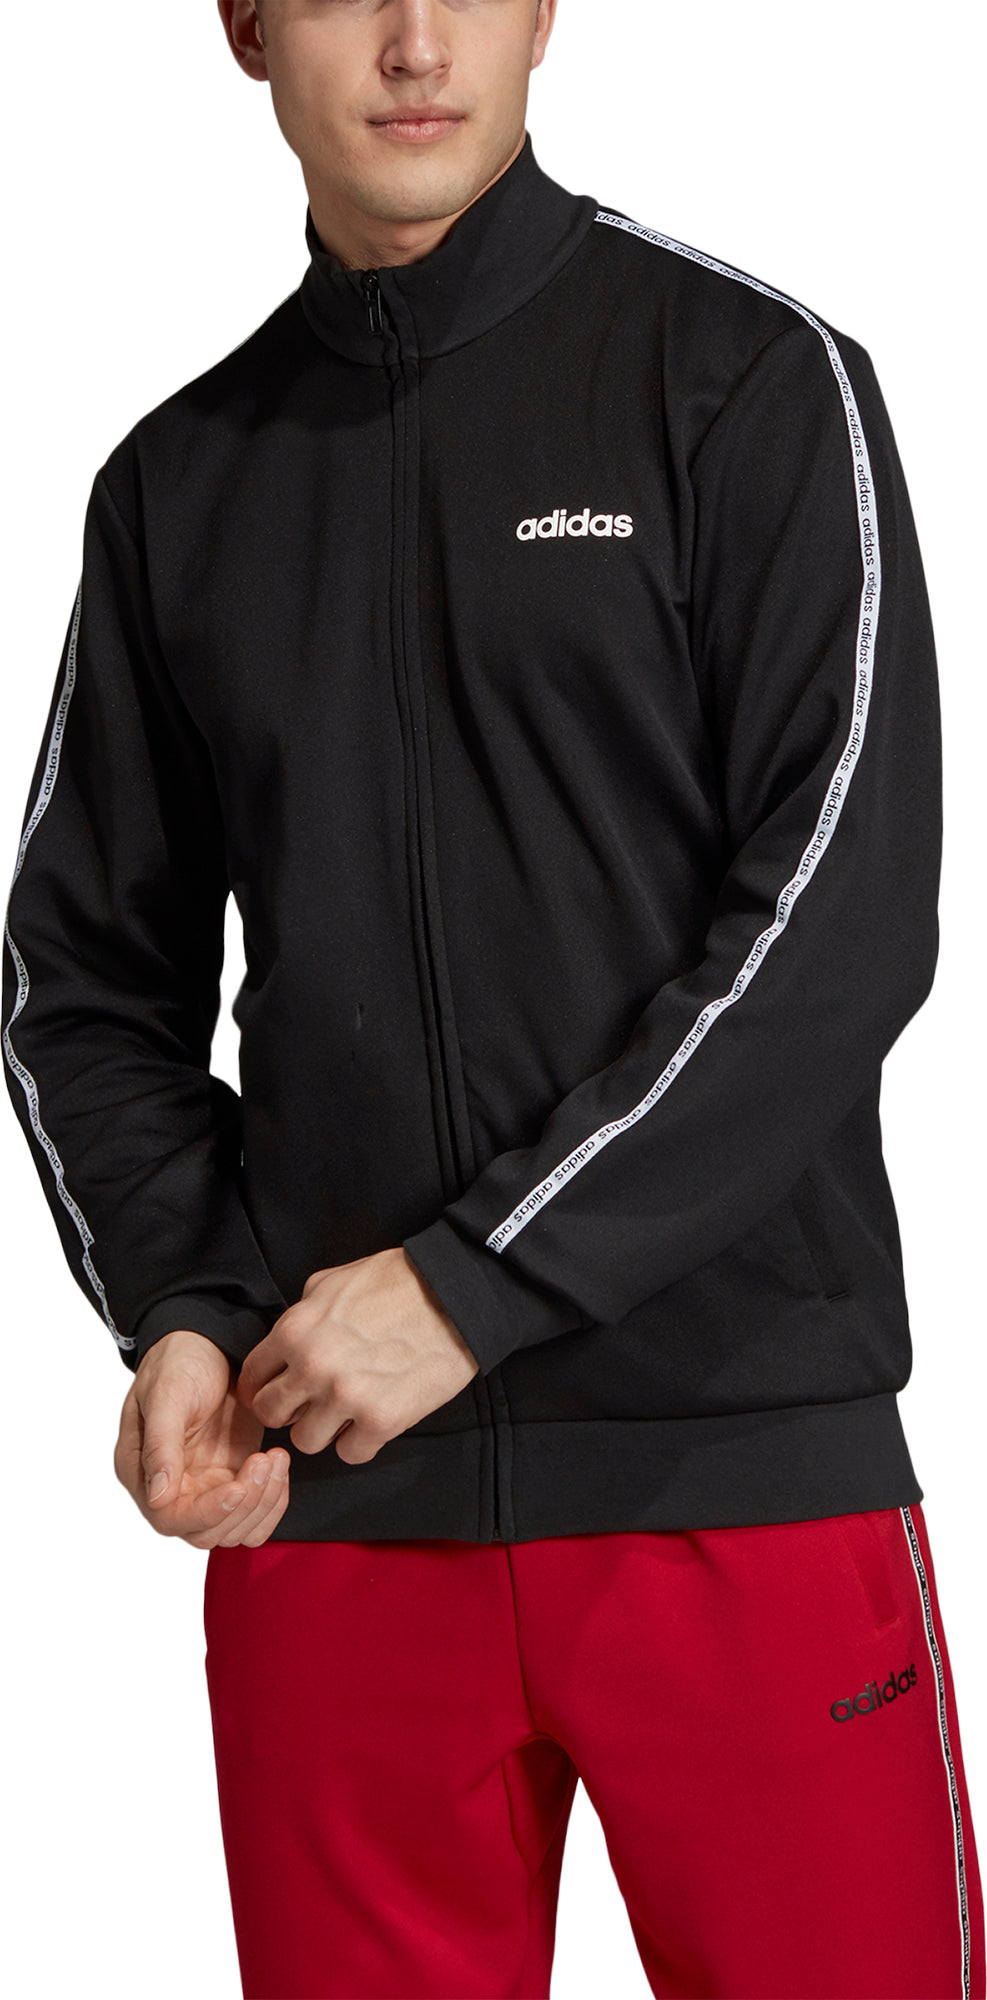 71b878aaec Adidas Celebrate the 90s Track Jacket - Men's